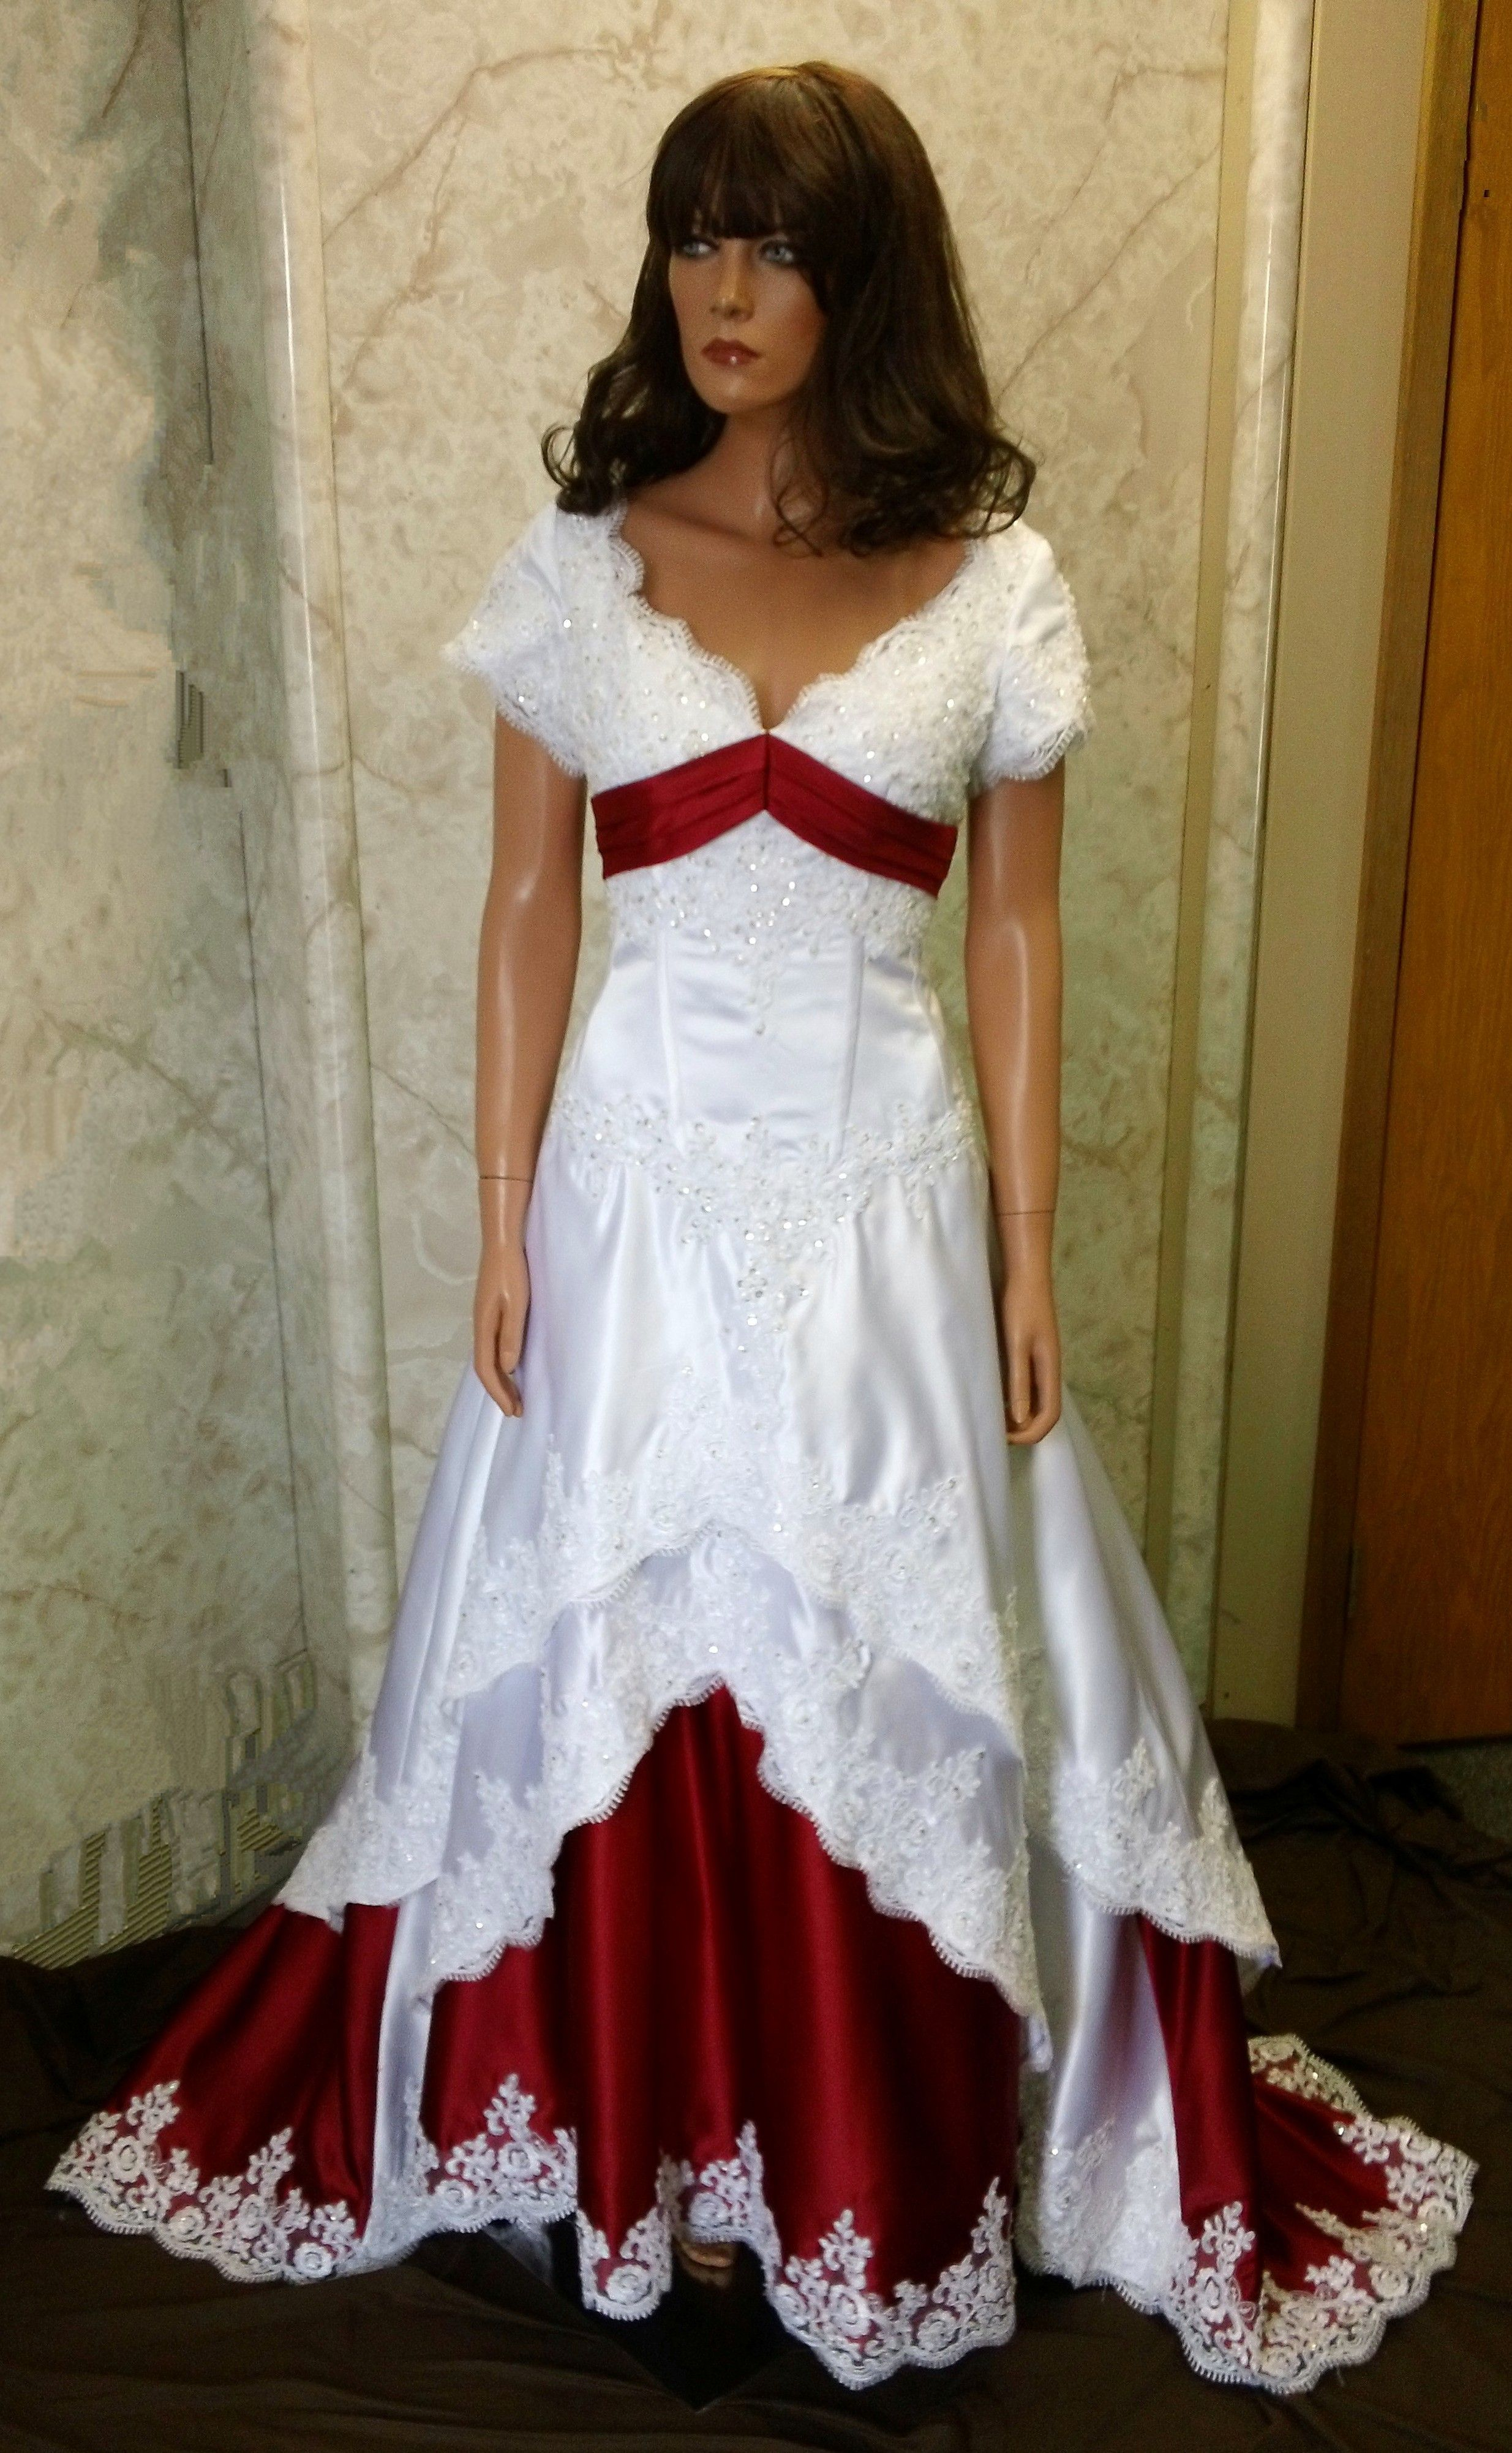 off white and red wedding dresses | Top 50 Wedding Dresses ...